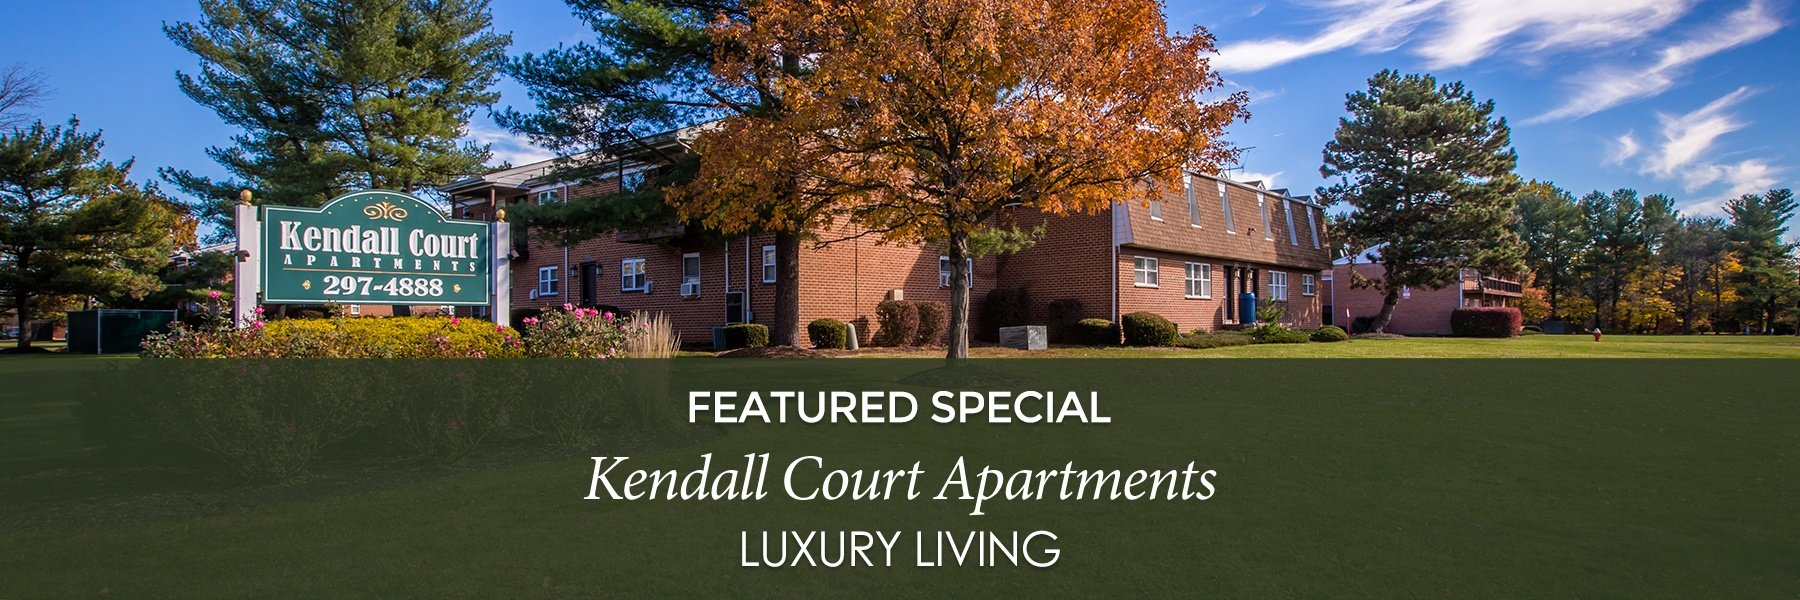 Kendall Court Apartments For Rent in North Brunswick, NJ Specials